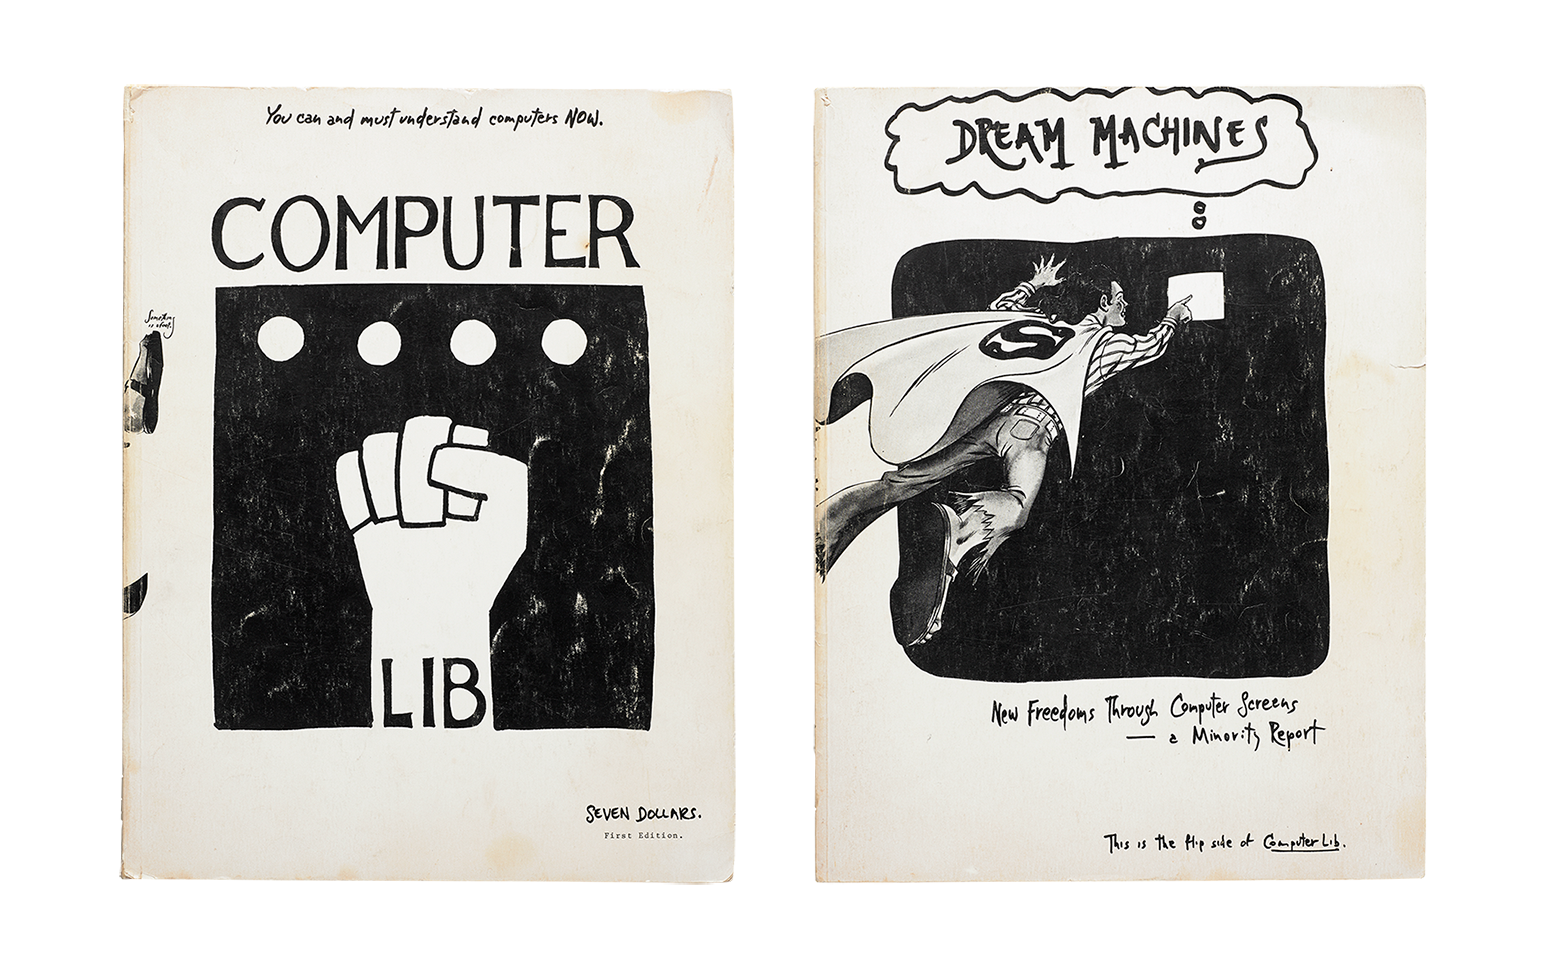 Ted Nelson Computer Lib Dream Machines 2.png